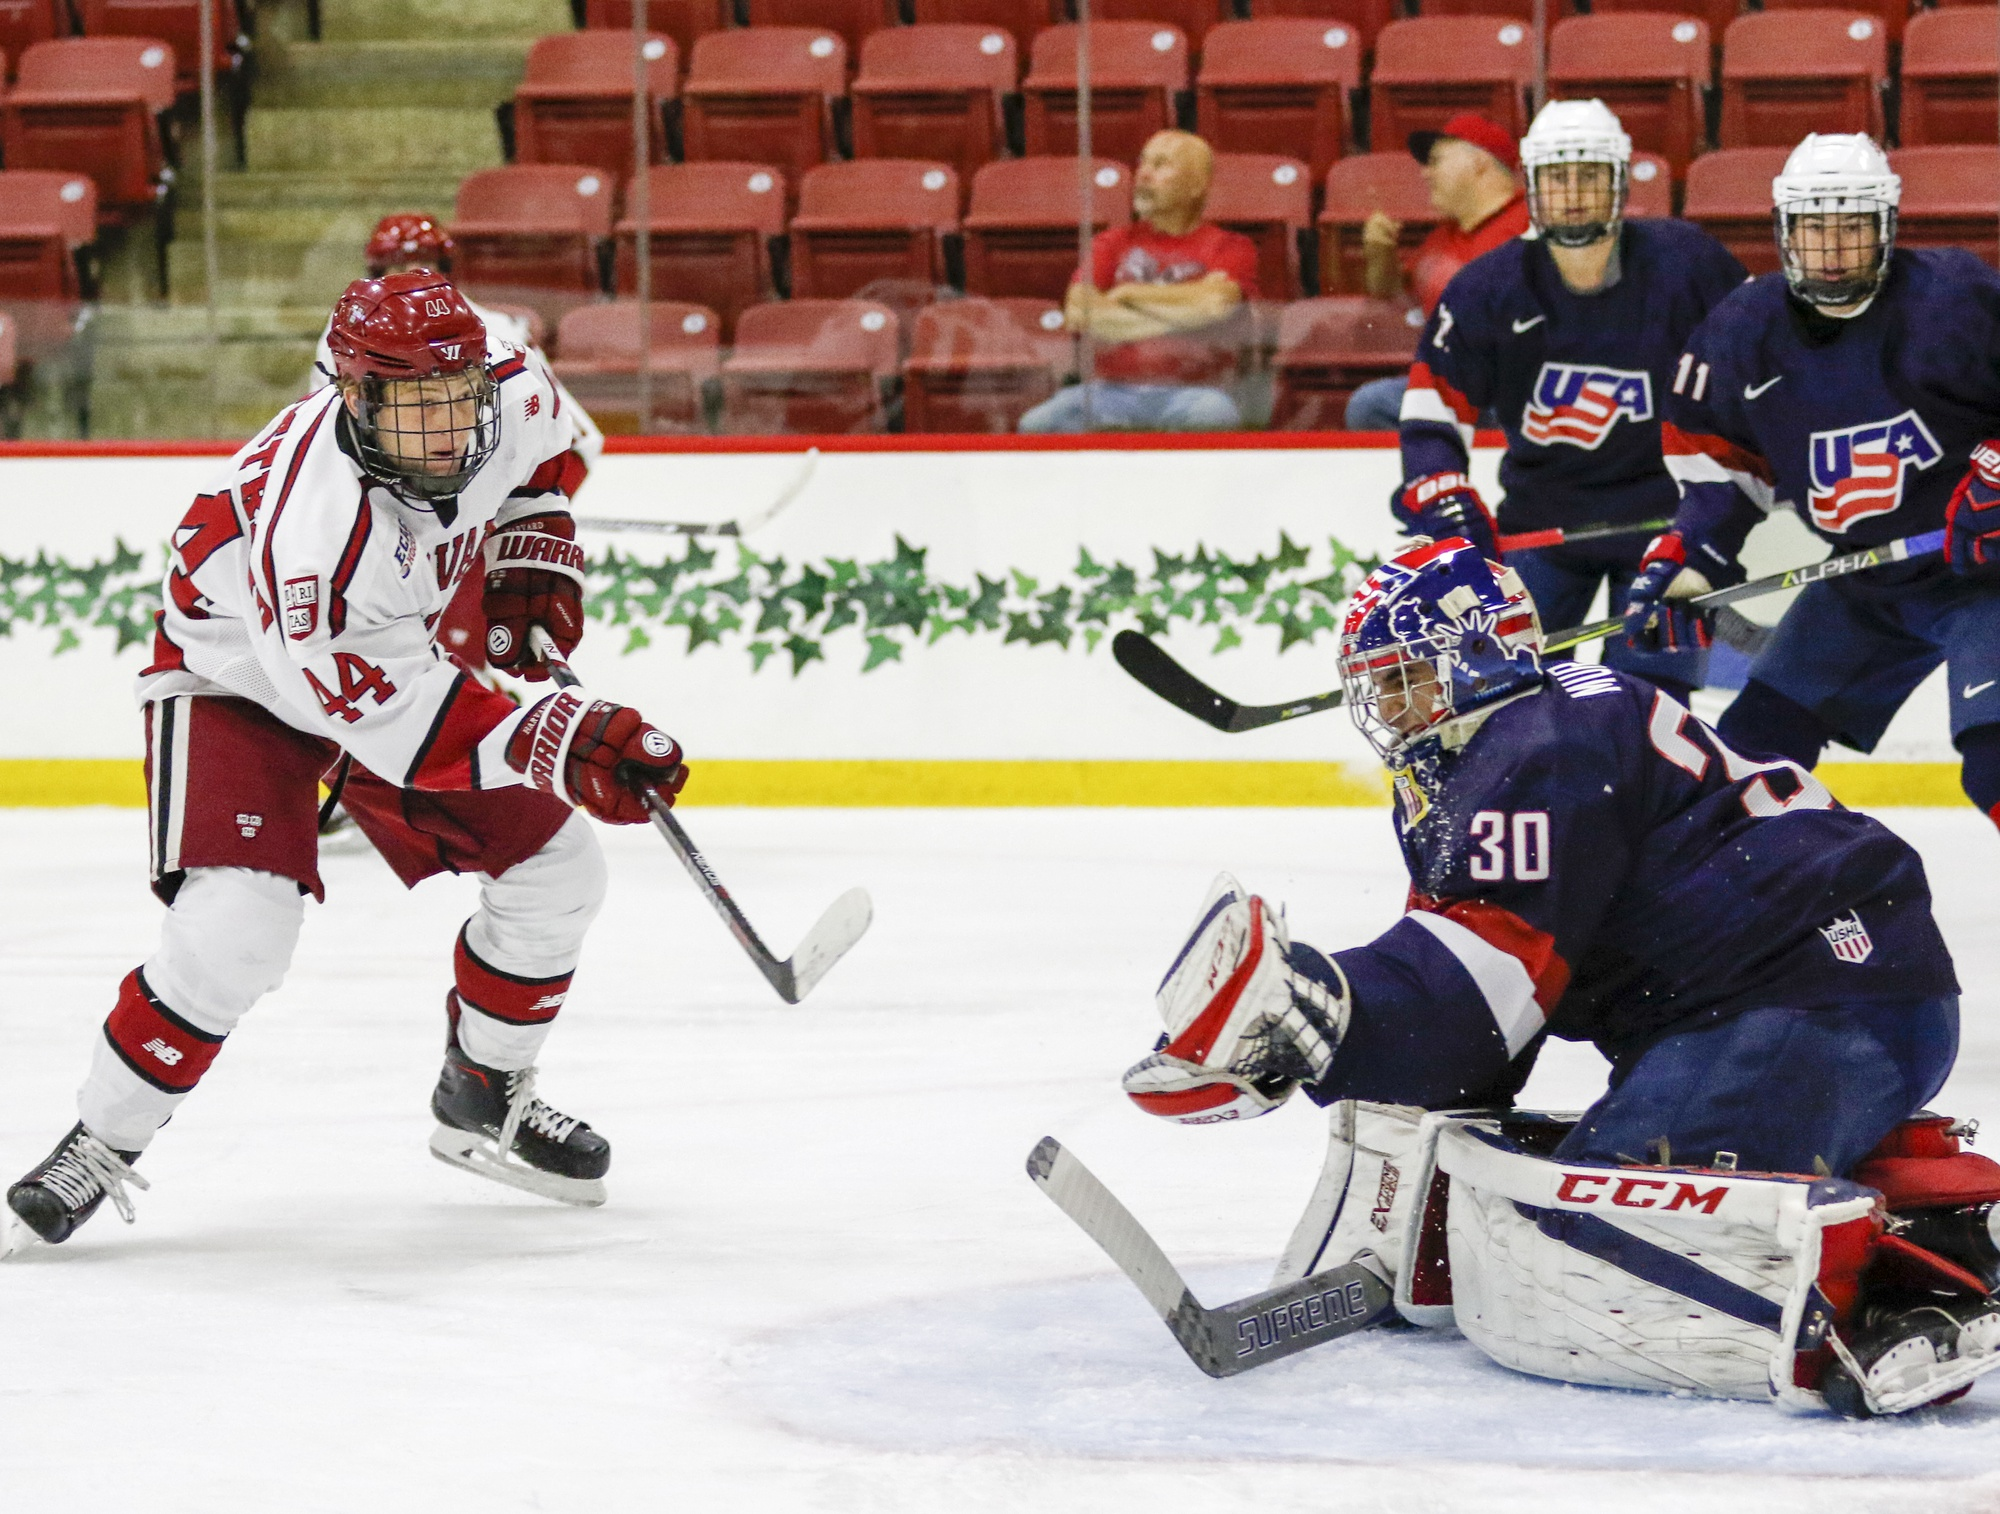 The Crimson hosted the USNTDP U-18 team in an exhibition for the second consecutive year. Lackey, Fox, Solin, and Walsh on the Harvard team all played with the program before college.